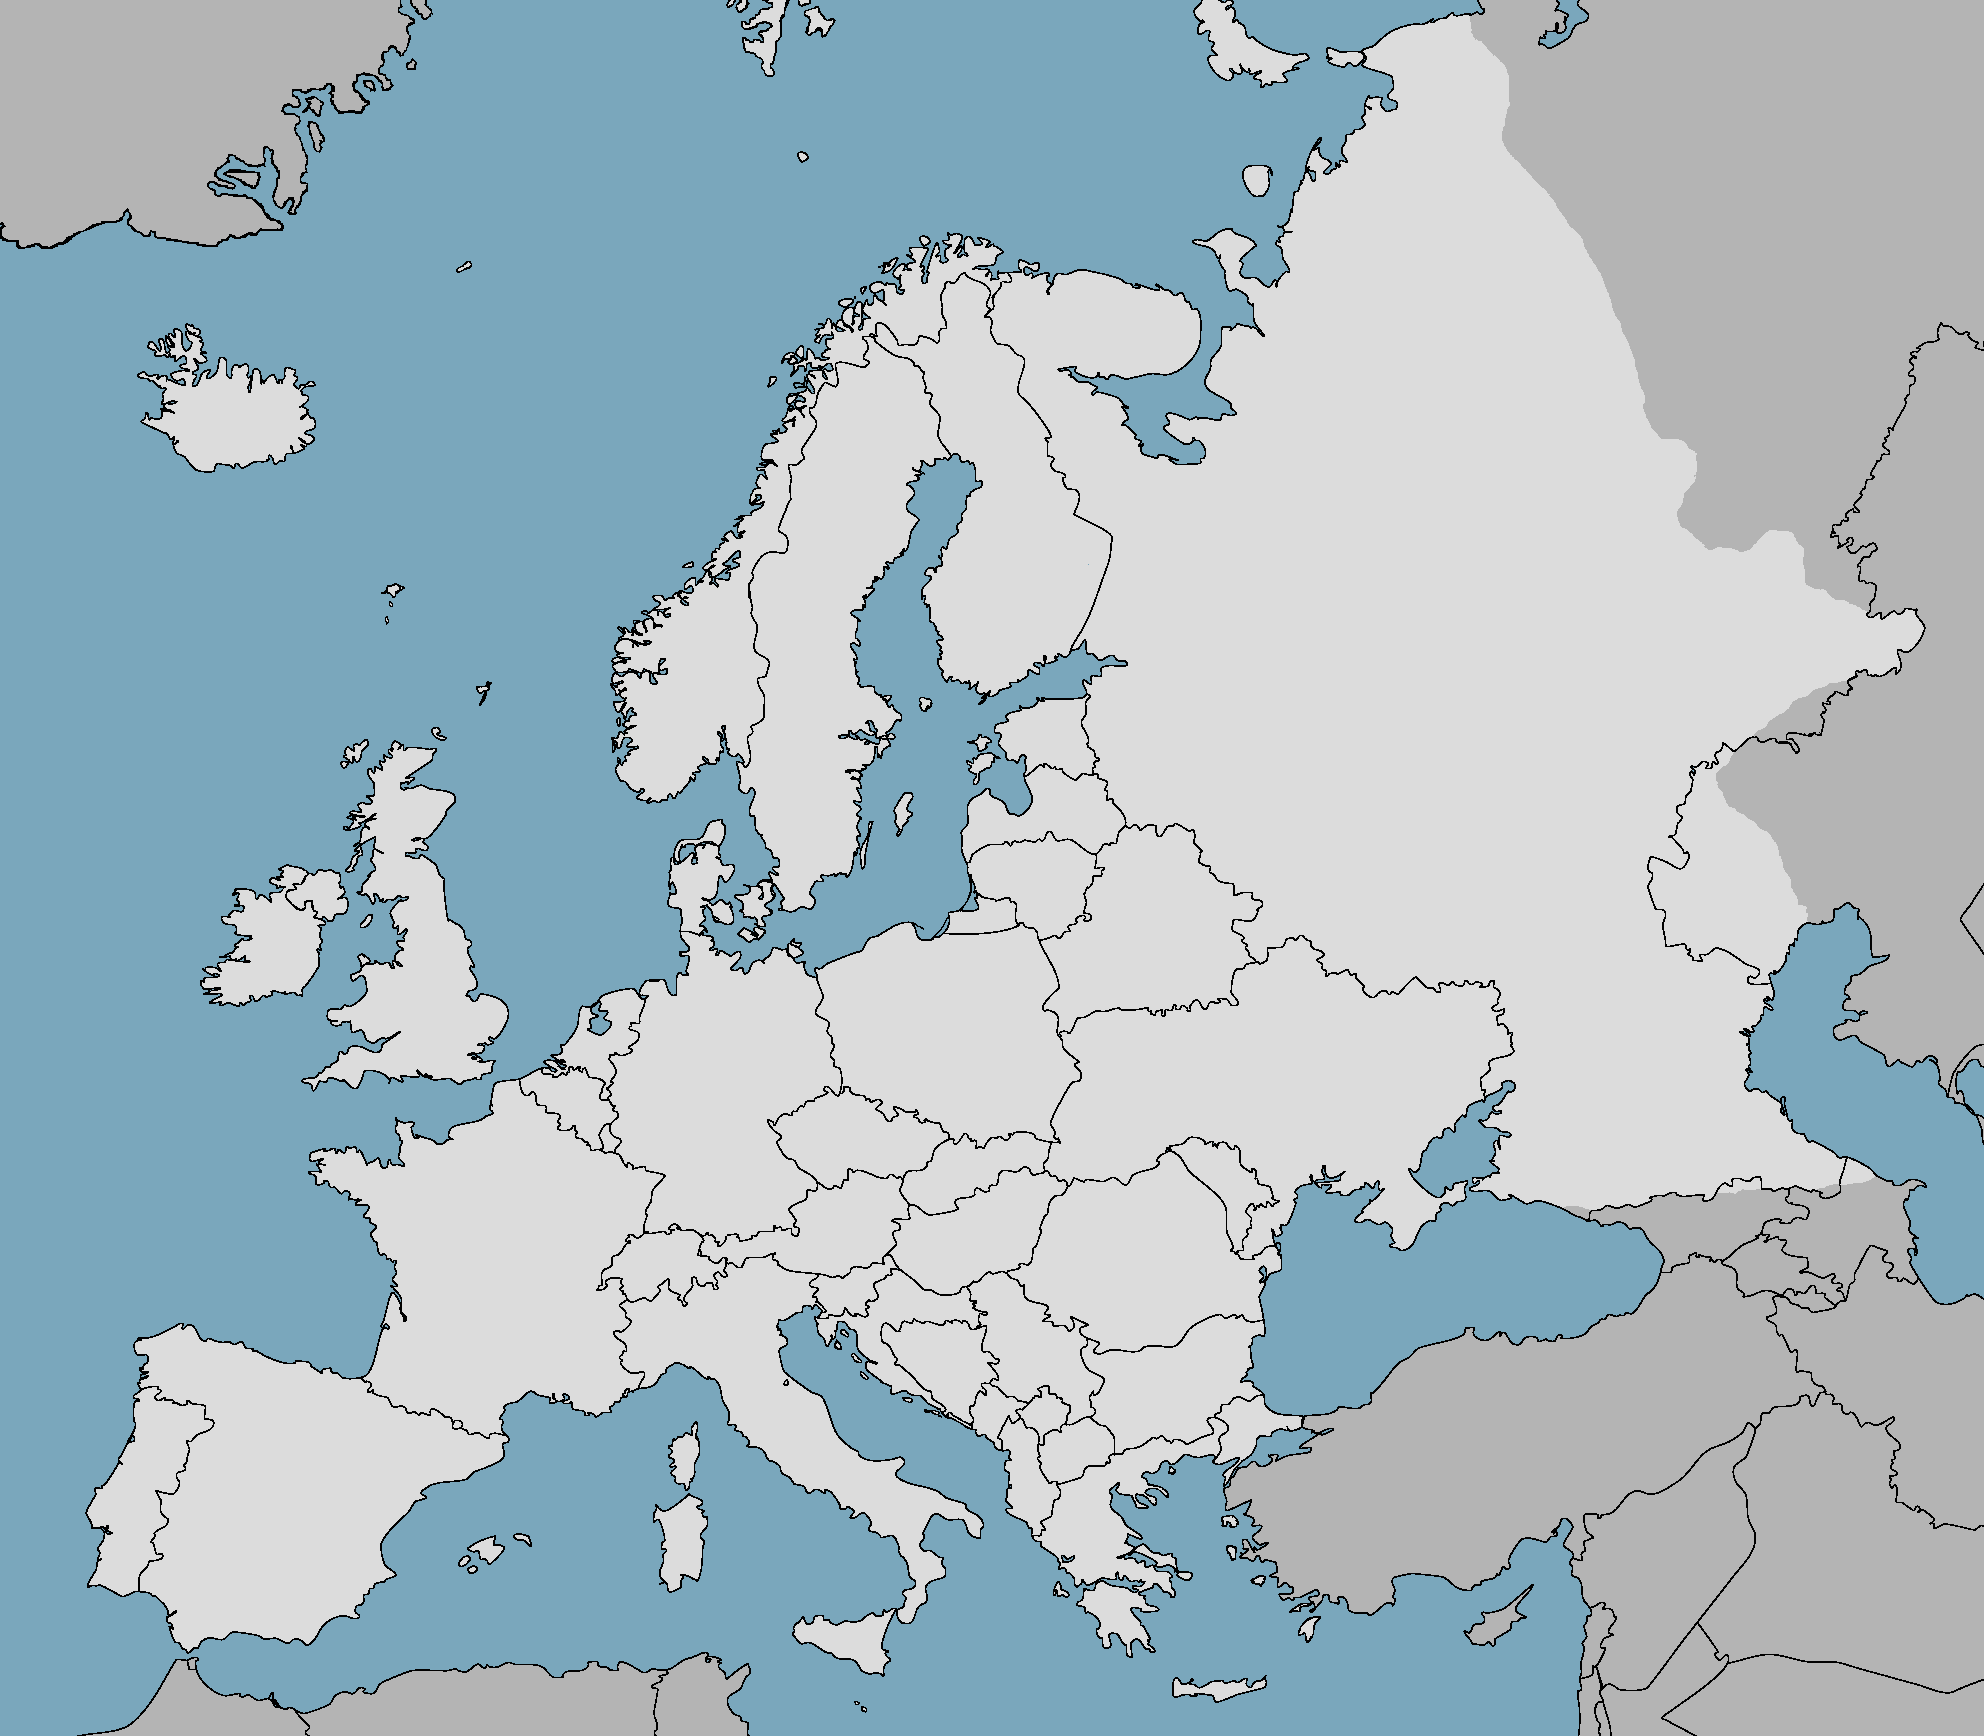 Blank europe map europe blank map europe blank map hd blank maphtml europe blank map google keress kreatv cuccok pinterest sciox Image collections